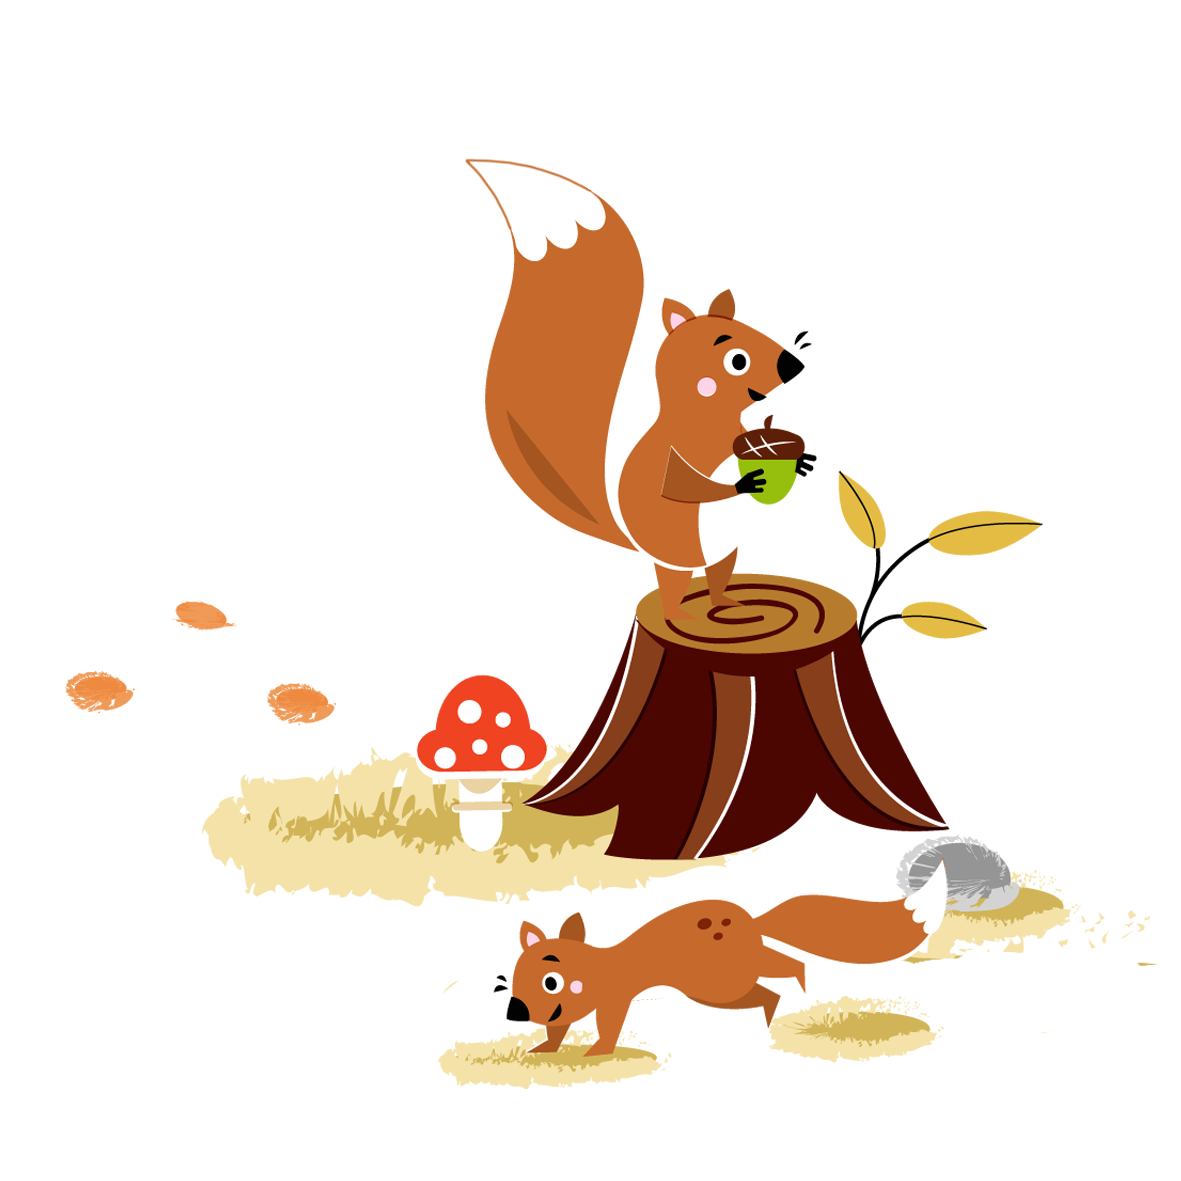 Squirrels in the woods - Vector Illustration © Emeline Barrea, All rights reserved